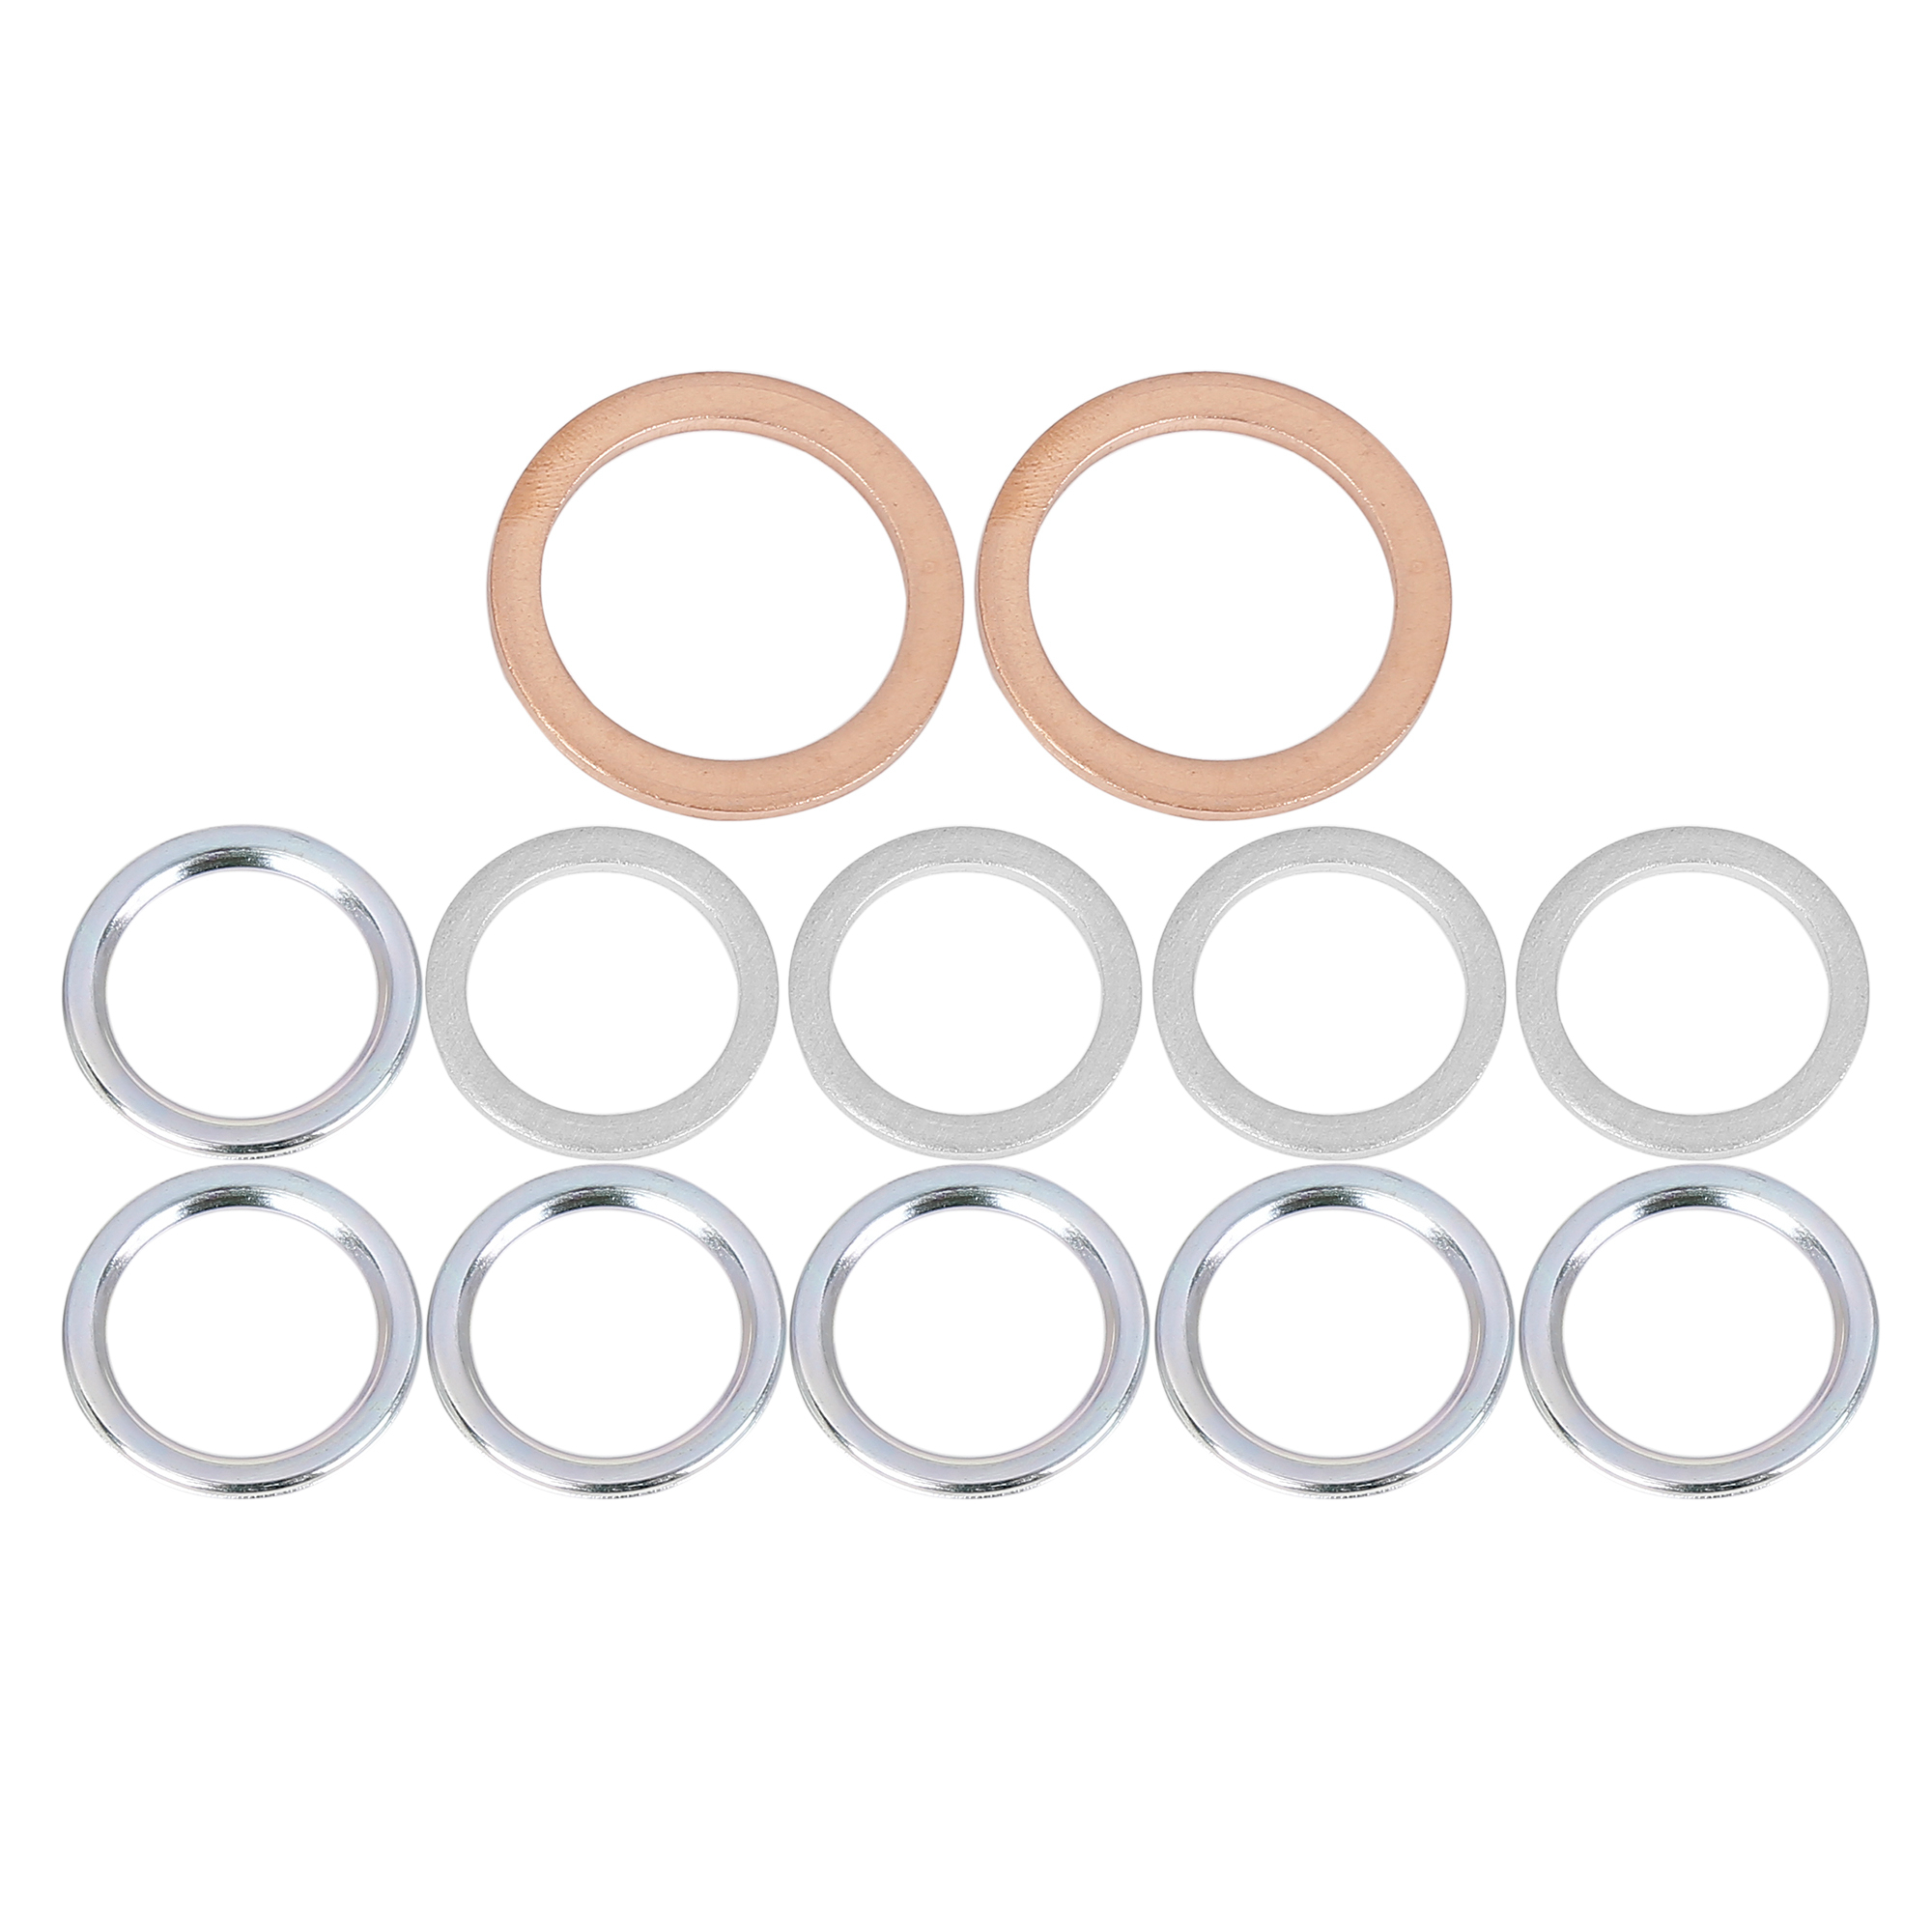 12pcs Oil Drain Plug Gaskets Replacement for Toyota 12157-10010 90430-24003